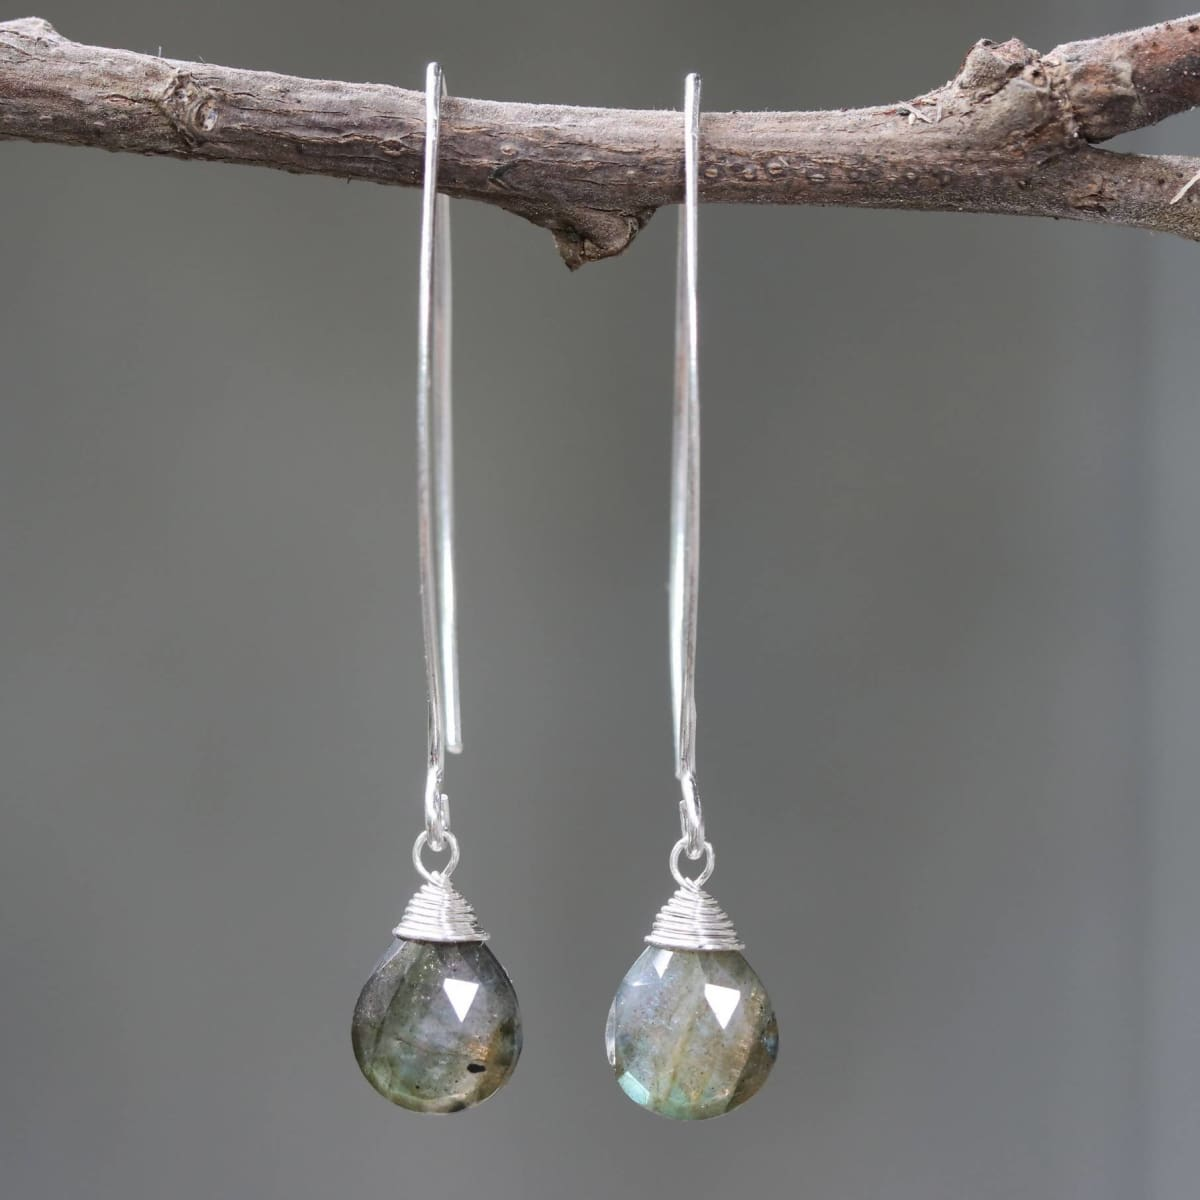 Earrings Silver wire earrings with labradorite drop